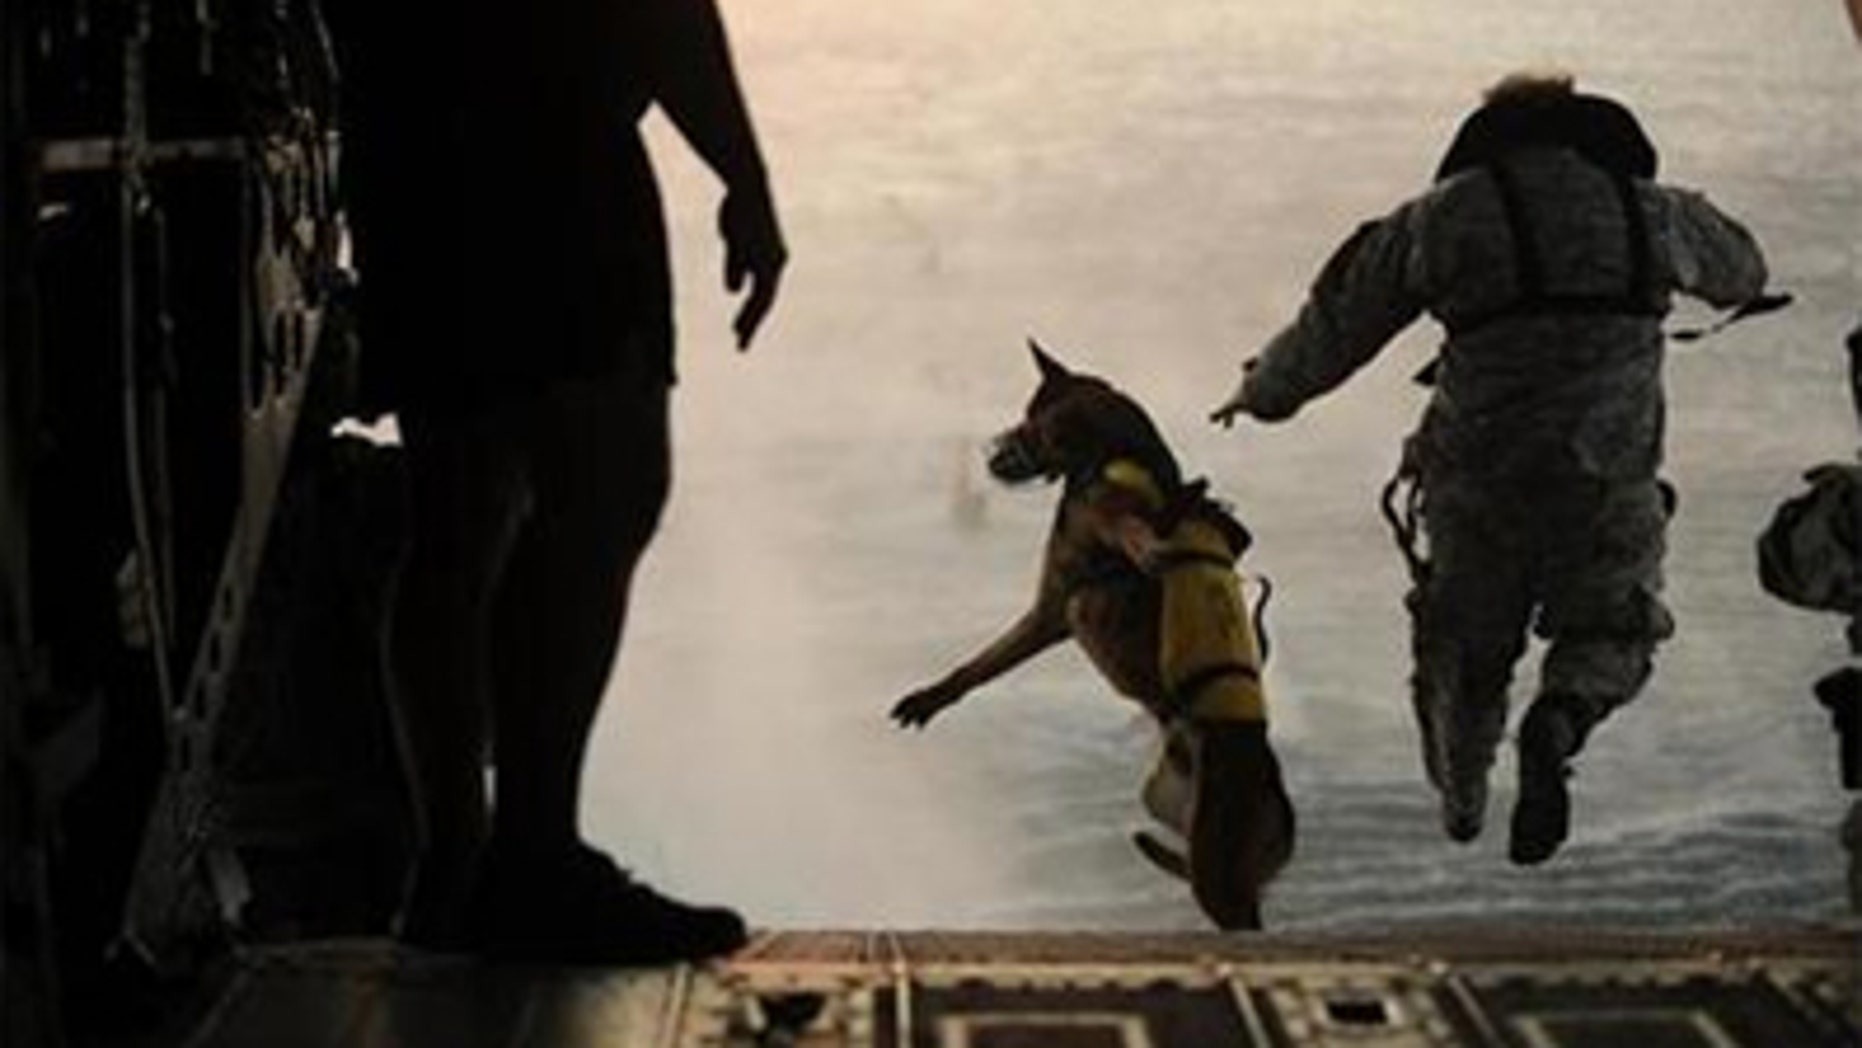 A U.S. Army soldier with the 10th Special Forces Group and his military working dog jump off the ramp of a CH-47 Chinook helicopter from the 160th Special Operations Aviation Regiment during water training over the Gulf of Mexico as part of exercise Emerald Warrior 2011 in this U.S. military handout image from March 1, 2011.